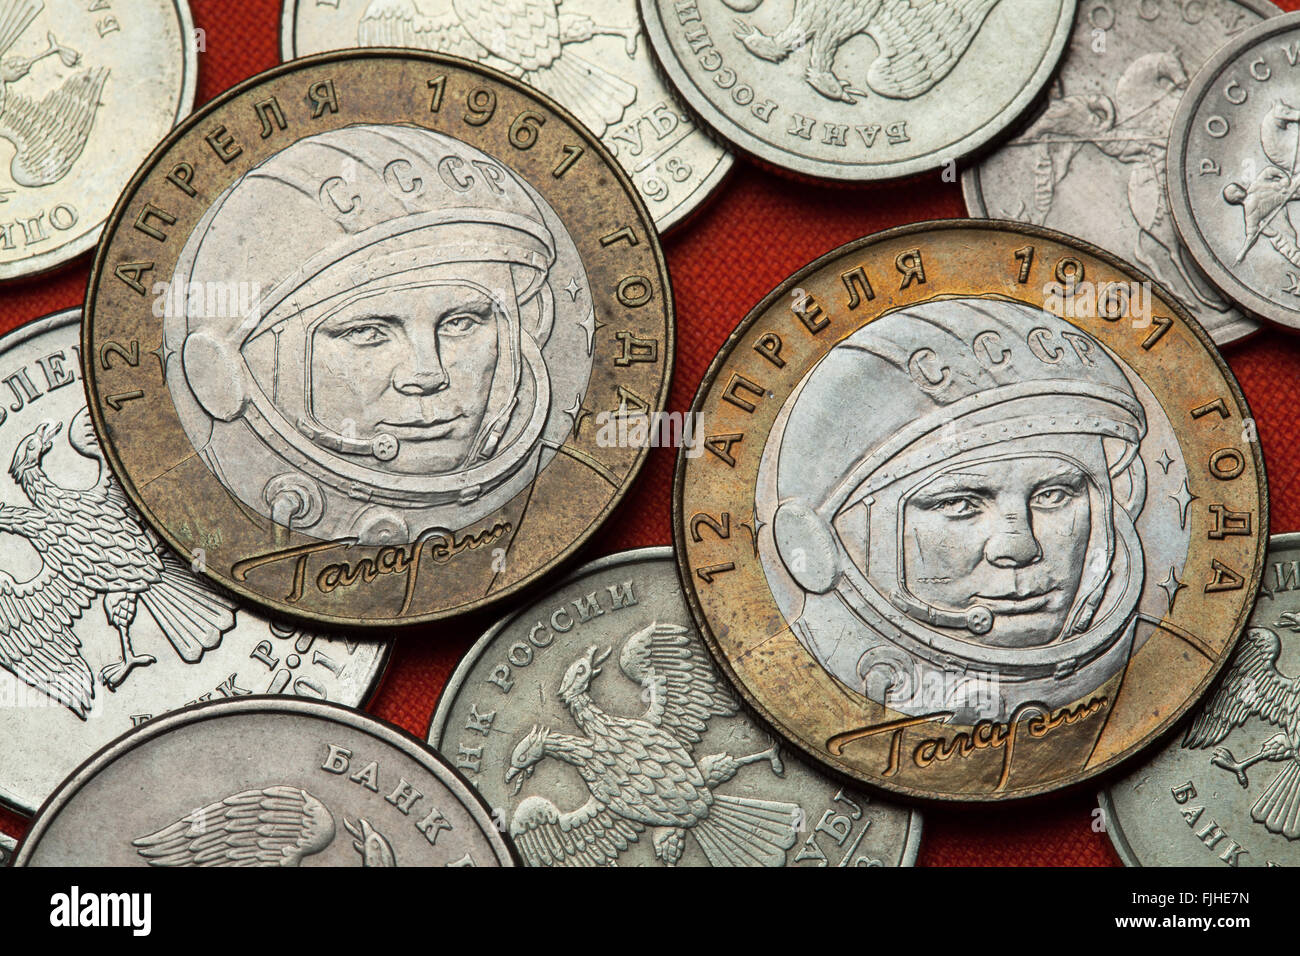 Coins of Russia. First Soviet cosmonaut Yuri Gagarin depicted in the Russian commemorative 10 ruble coin. - Stock Image